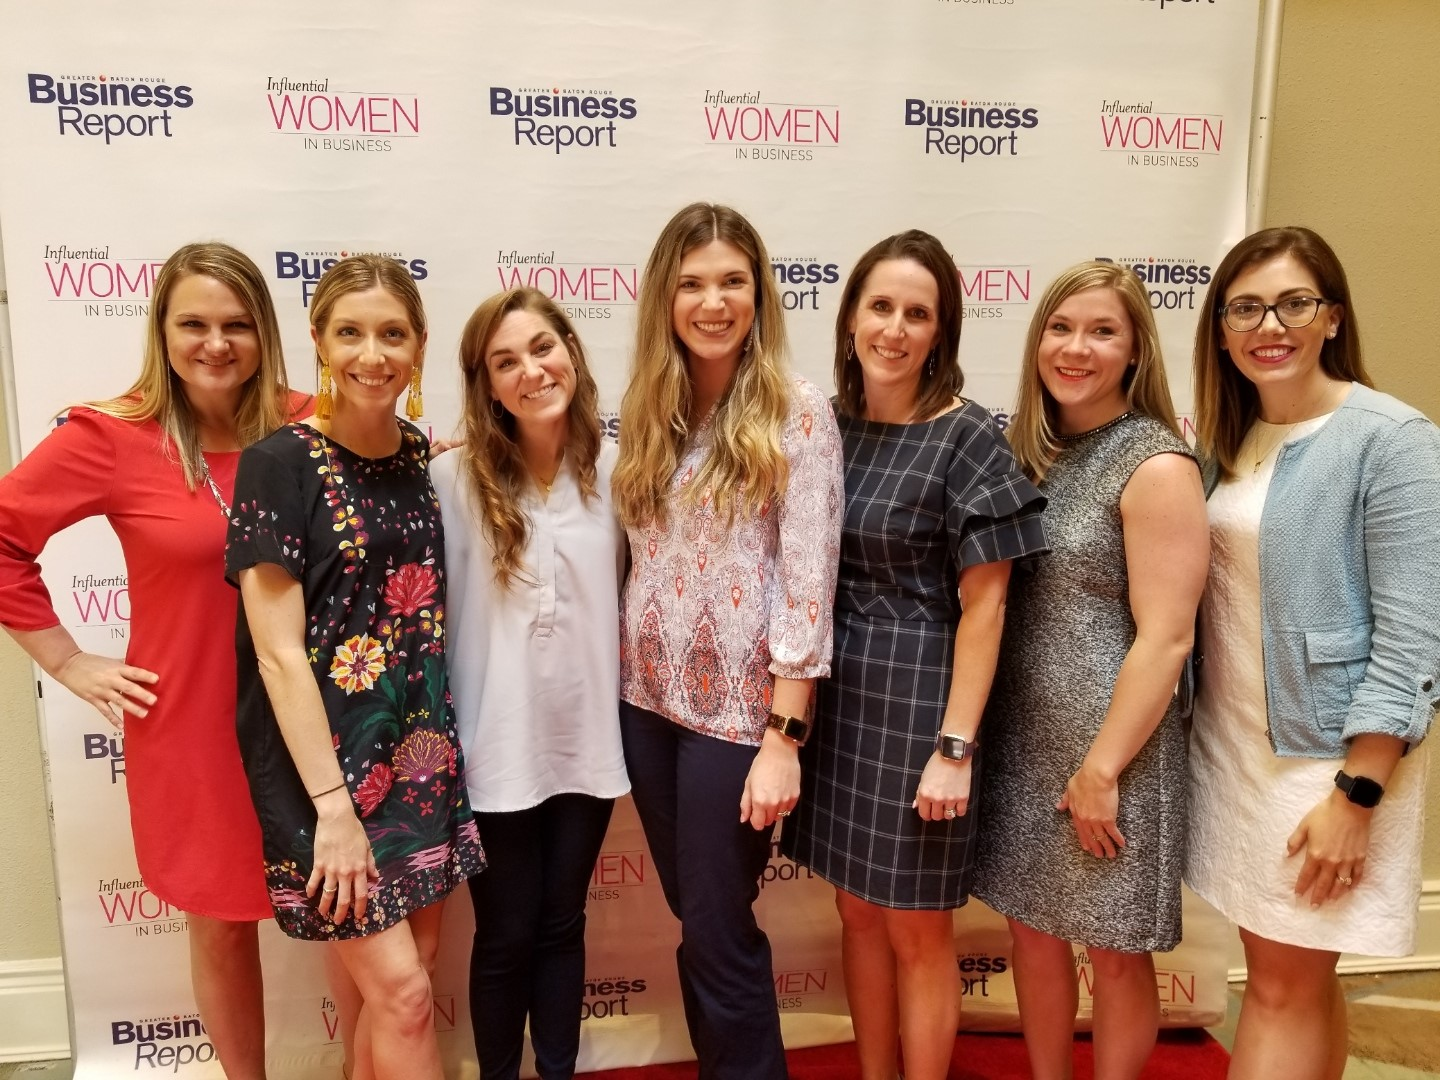 Maggie, Melissa, and a group of women from Faulk & Winkler attended the GBR Business Report's Influential Women in Business Lunch which featured the 2019 Influential Women in Business Honorees